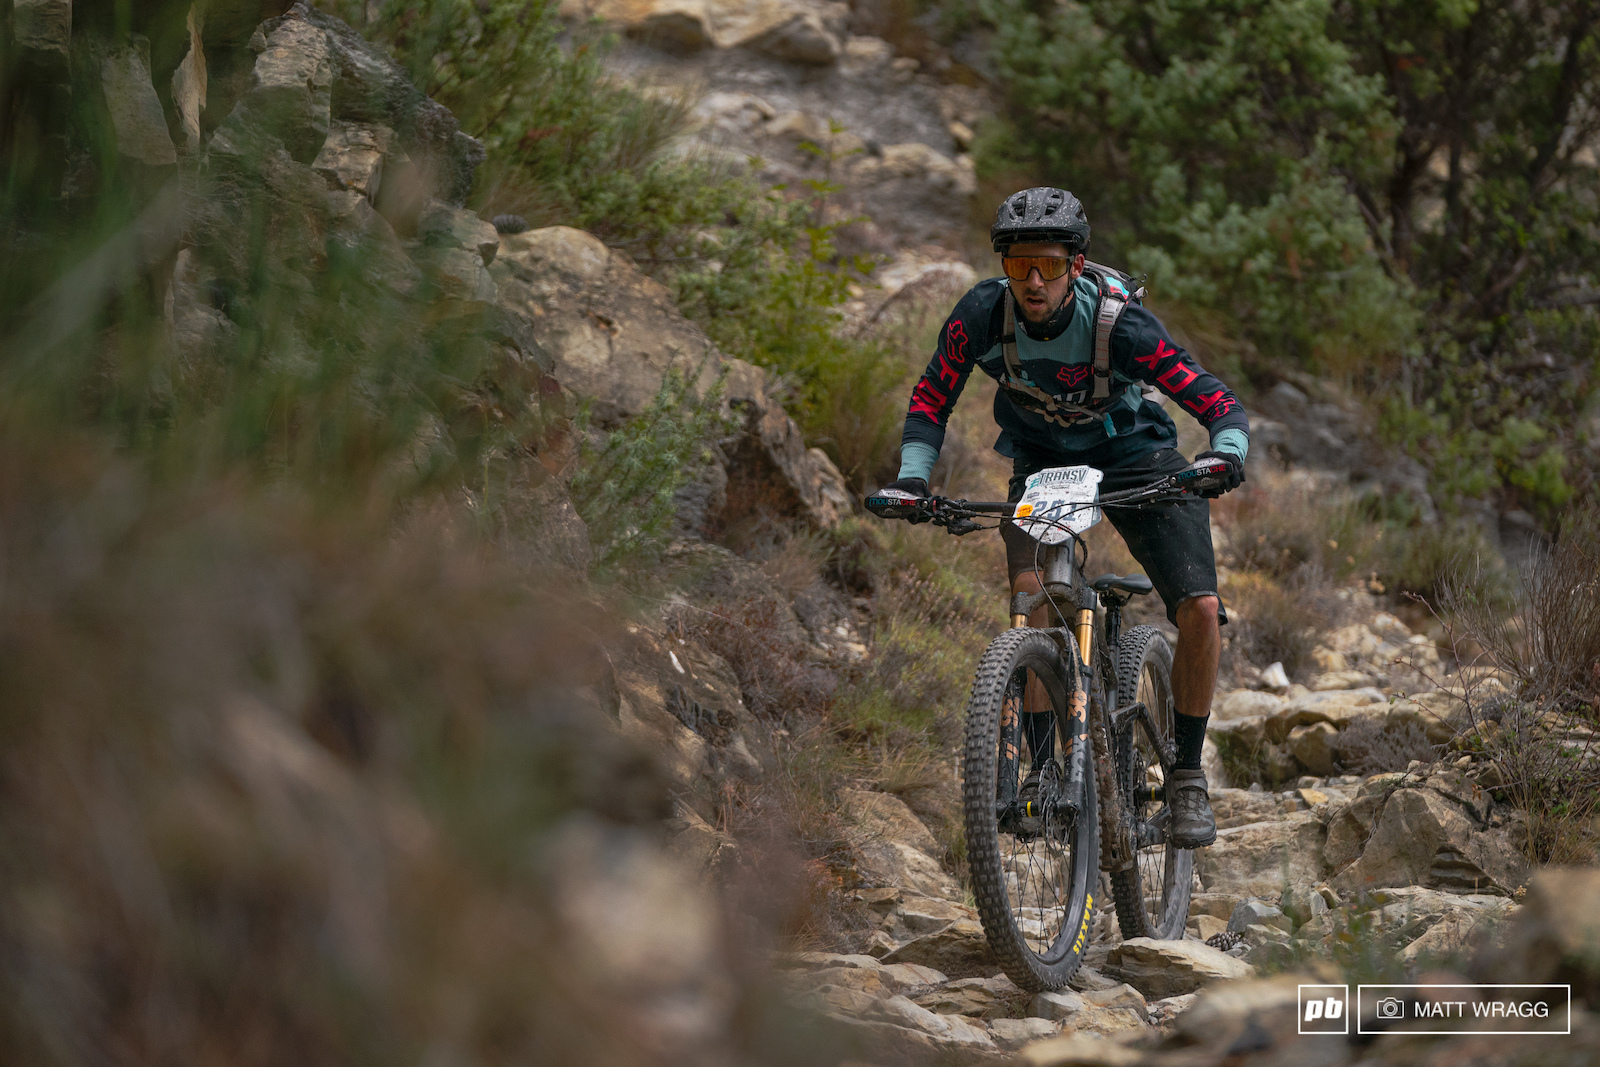 Jerome Gilloux took the win in the ebike class - you have to take your hat off to him as the day before he was racing the E-EWS in Pietra and anyone who thinks ebike racing is easy should try that combination before passing judgement.